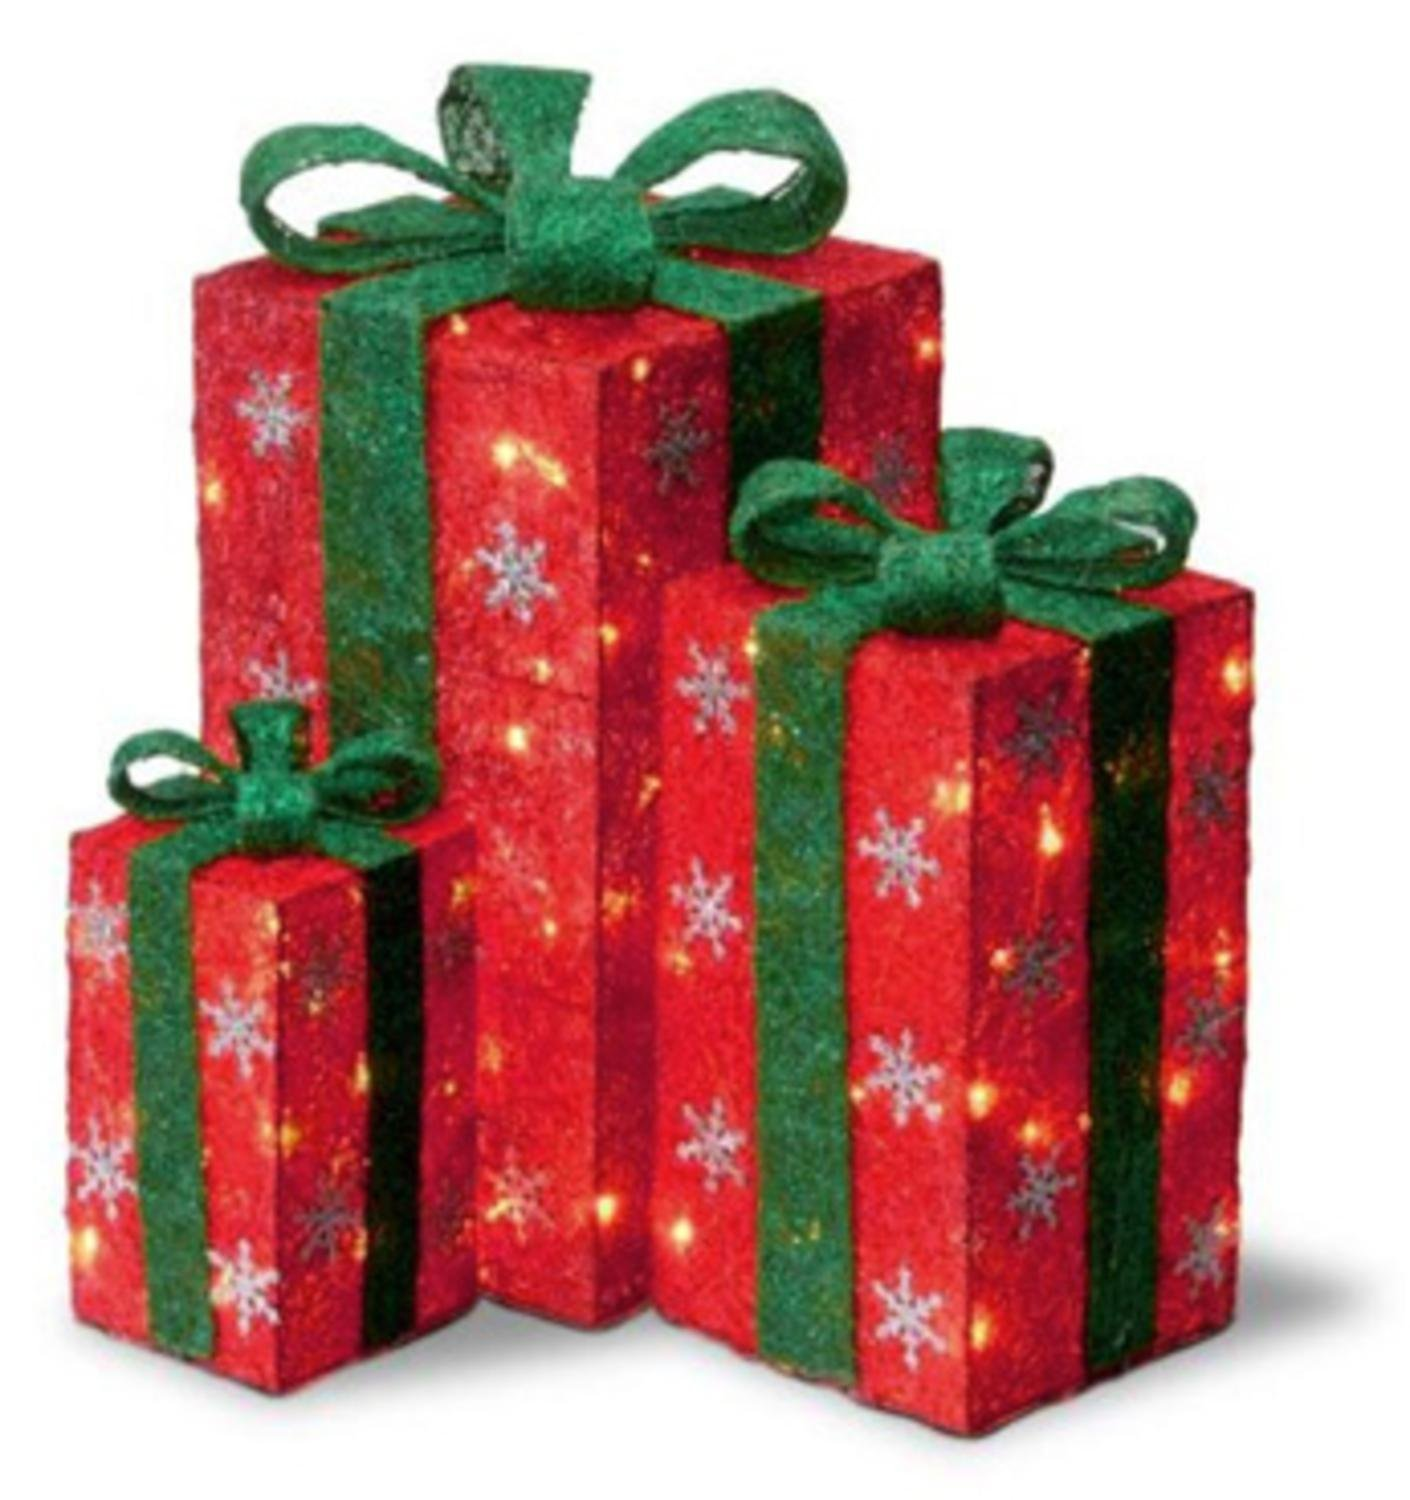 christmas gift boxes - Decorative Christmas Gift Boxes With Lids